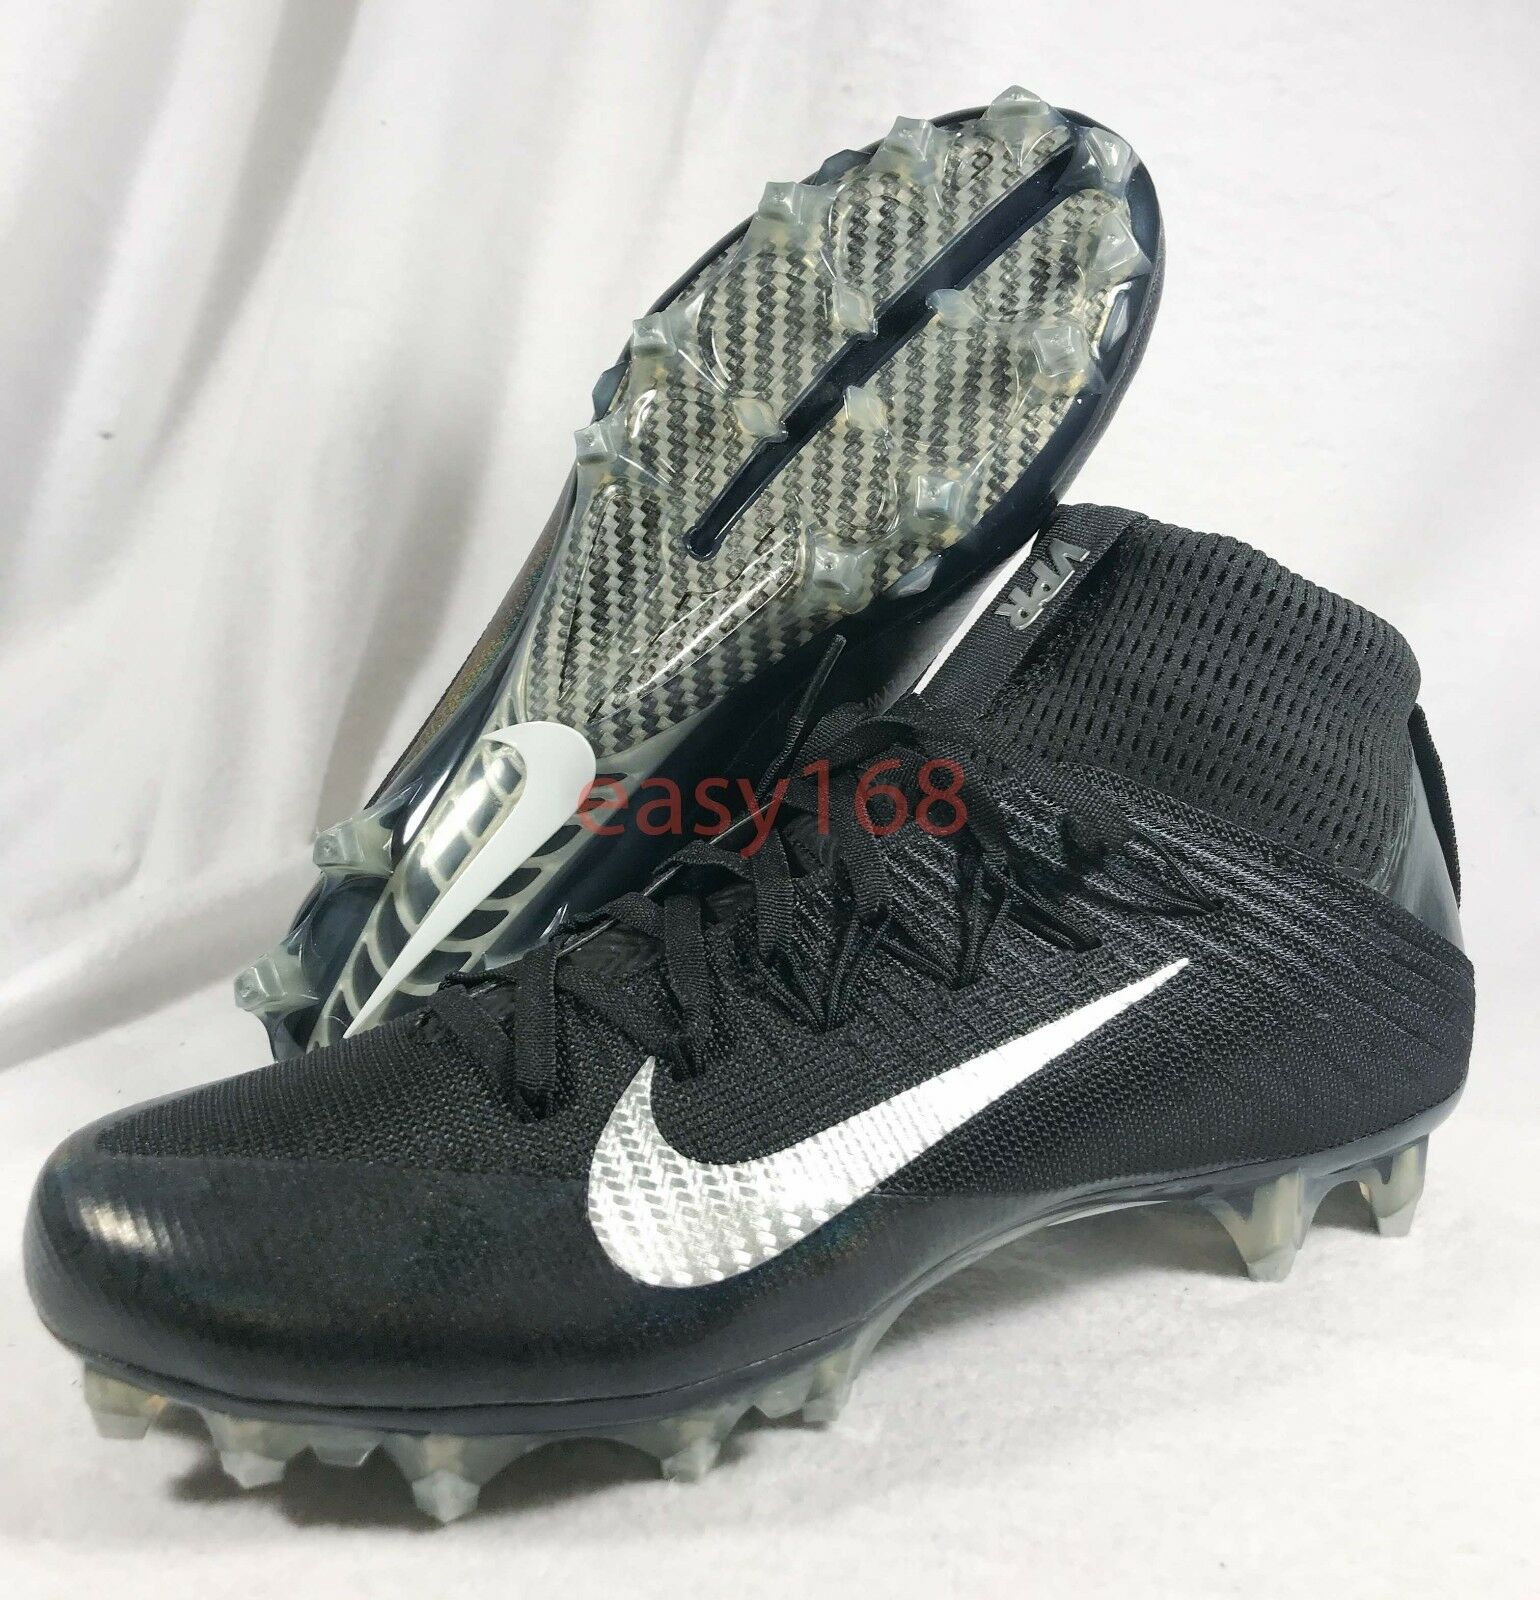 New Vapor Untouchable 2 Sz 9.5 Mens Cleat Boot Football VPR Black 824470-002